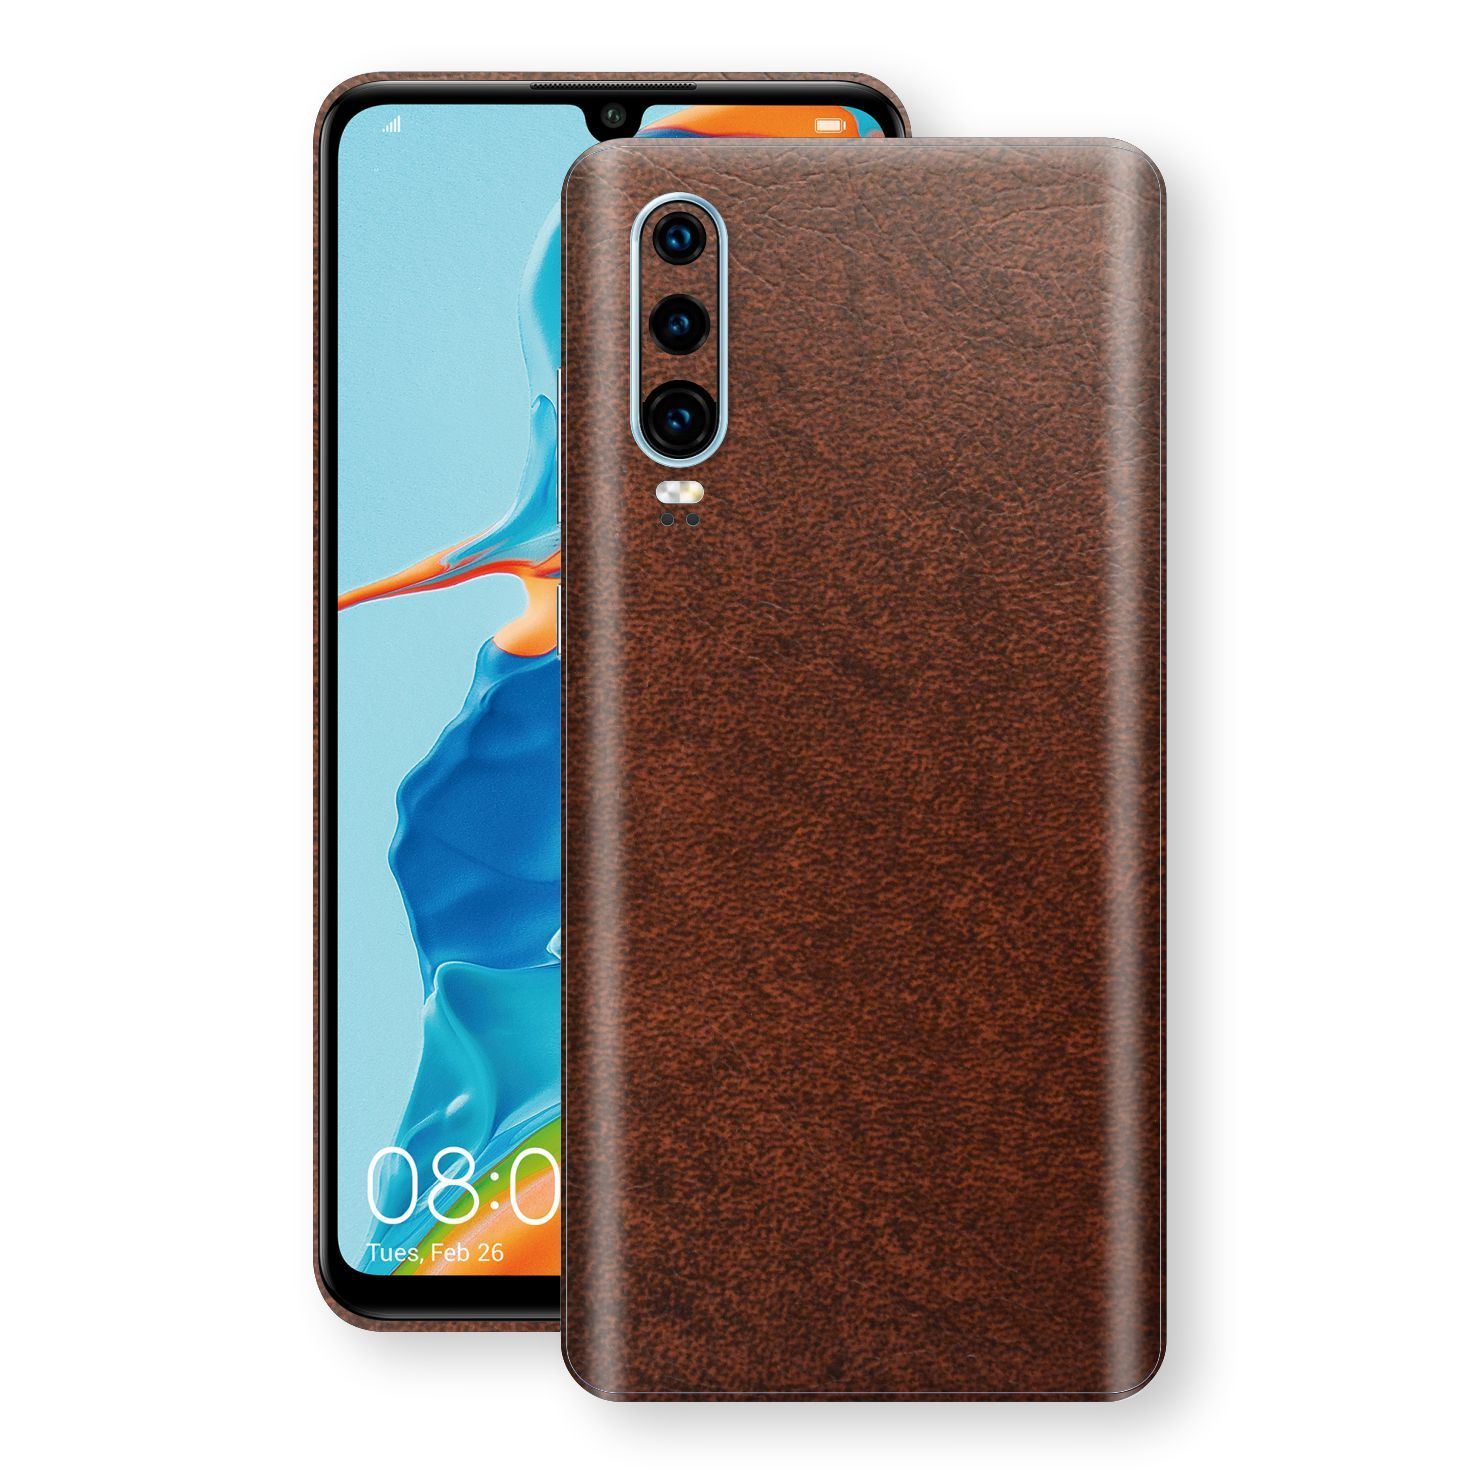 Huawei P30 BROWN Leather Skin Wrap Decal Protector | EasySkinz